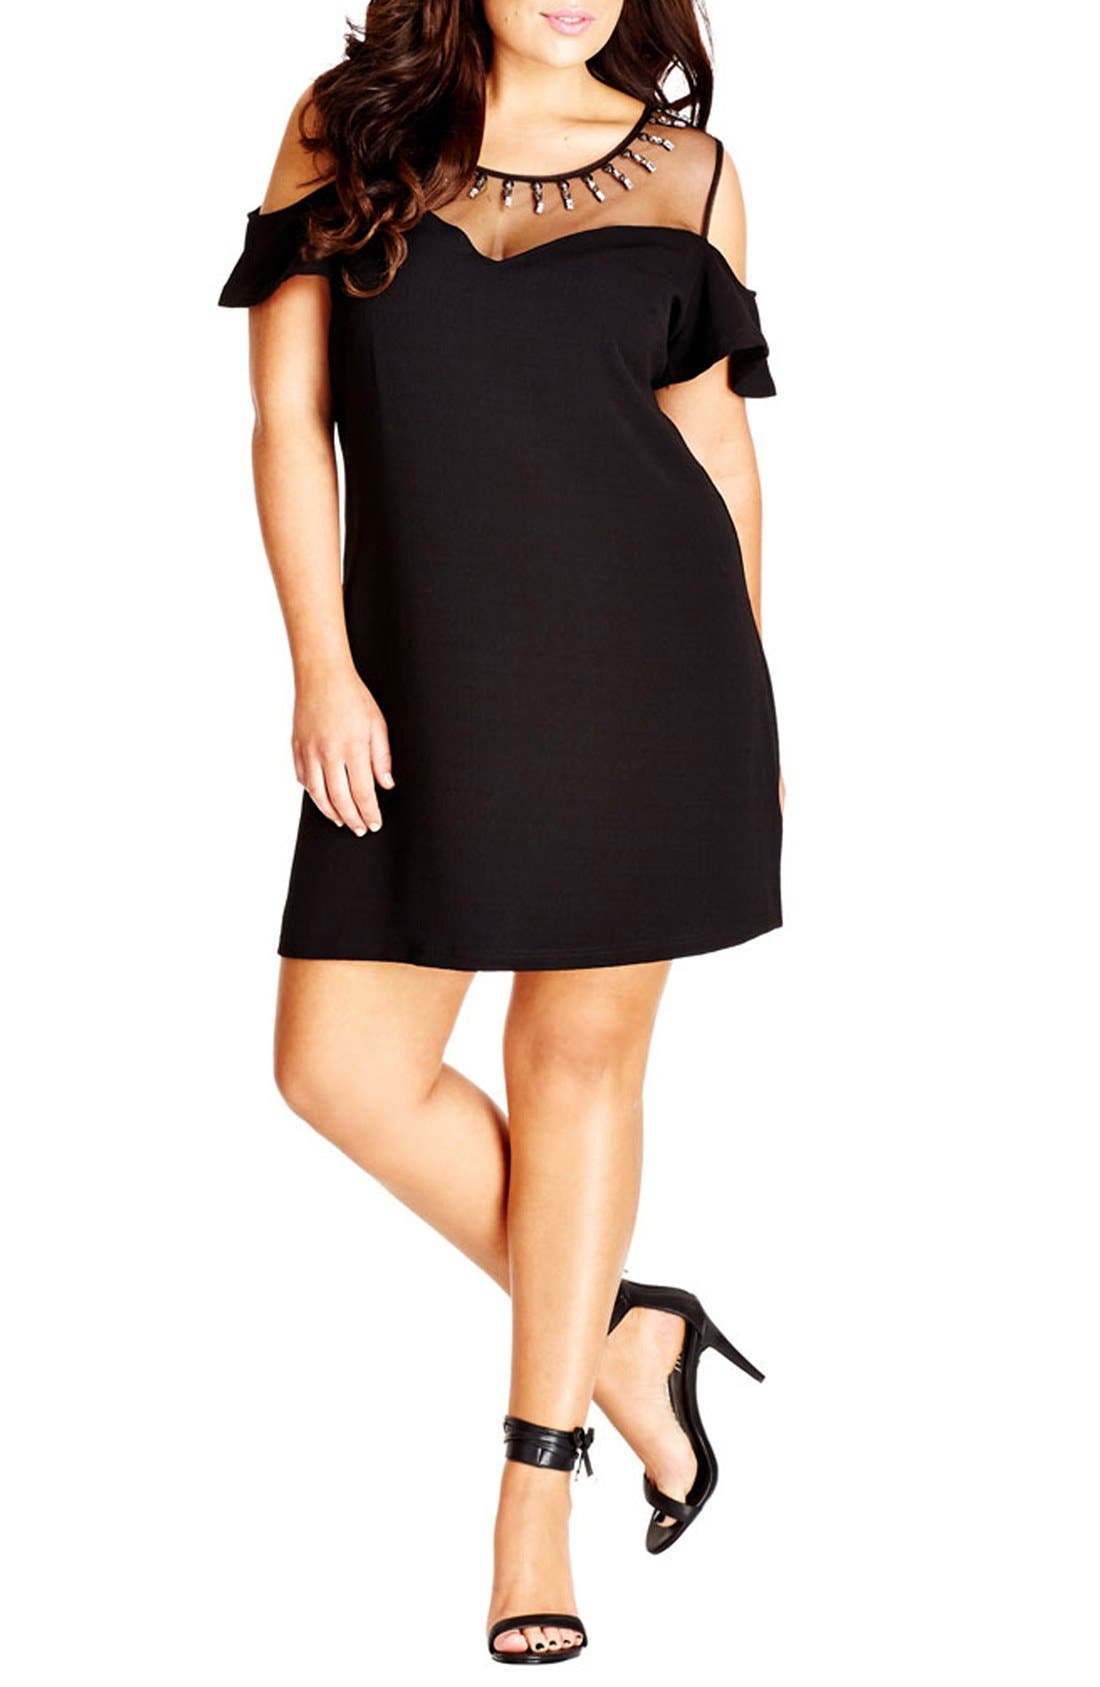 CITY CHIC 'Stud Star' Illusion Off the Shoulder Shift Dress